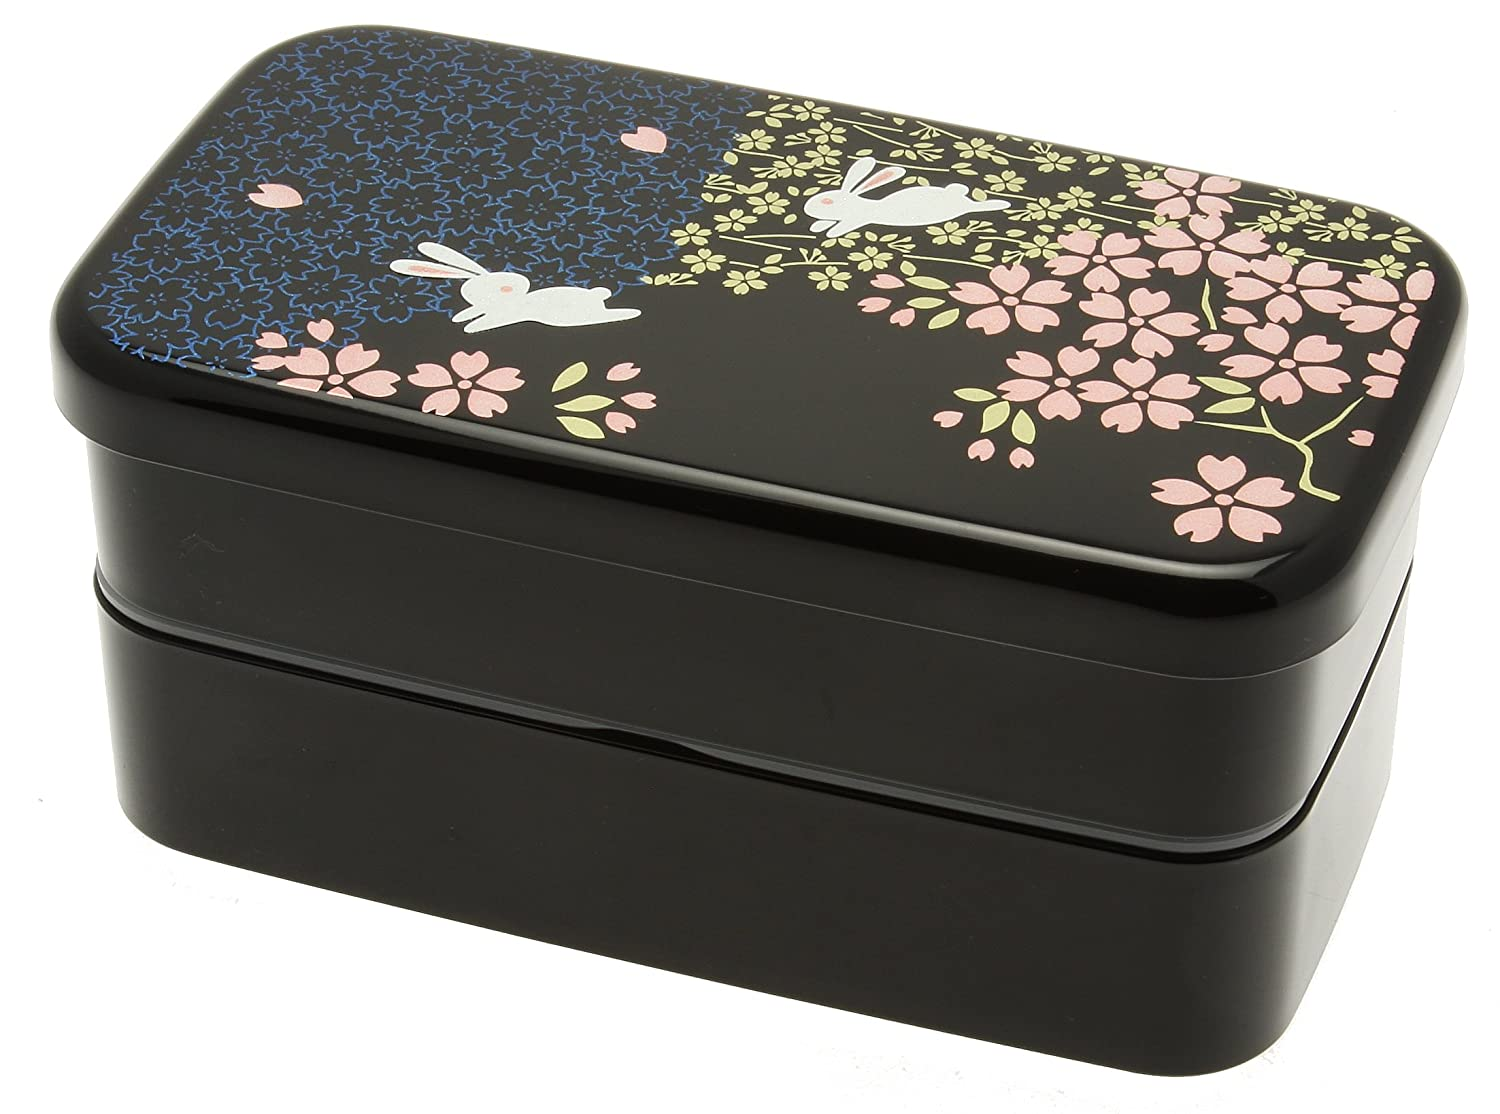 Kotobuki 280-274 2-Tiered Bento Box, Rabbit and Cherry Blossom